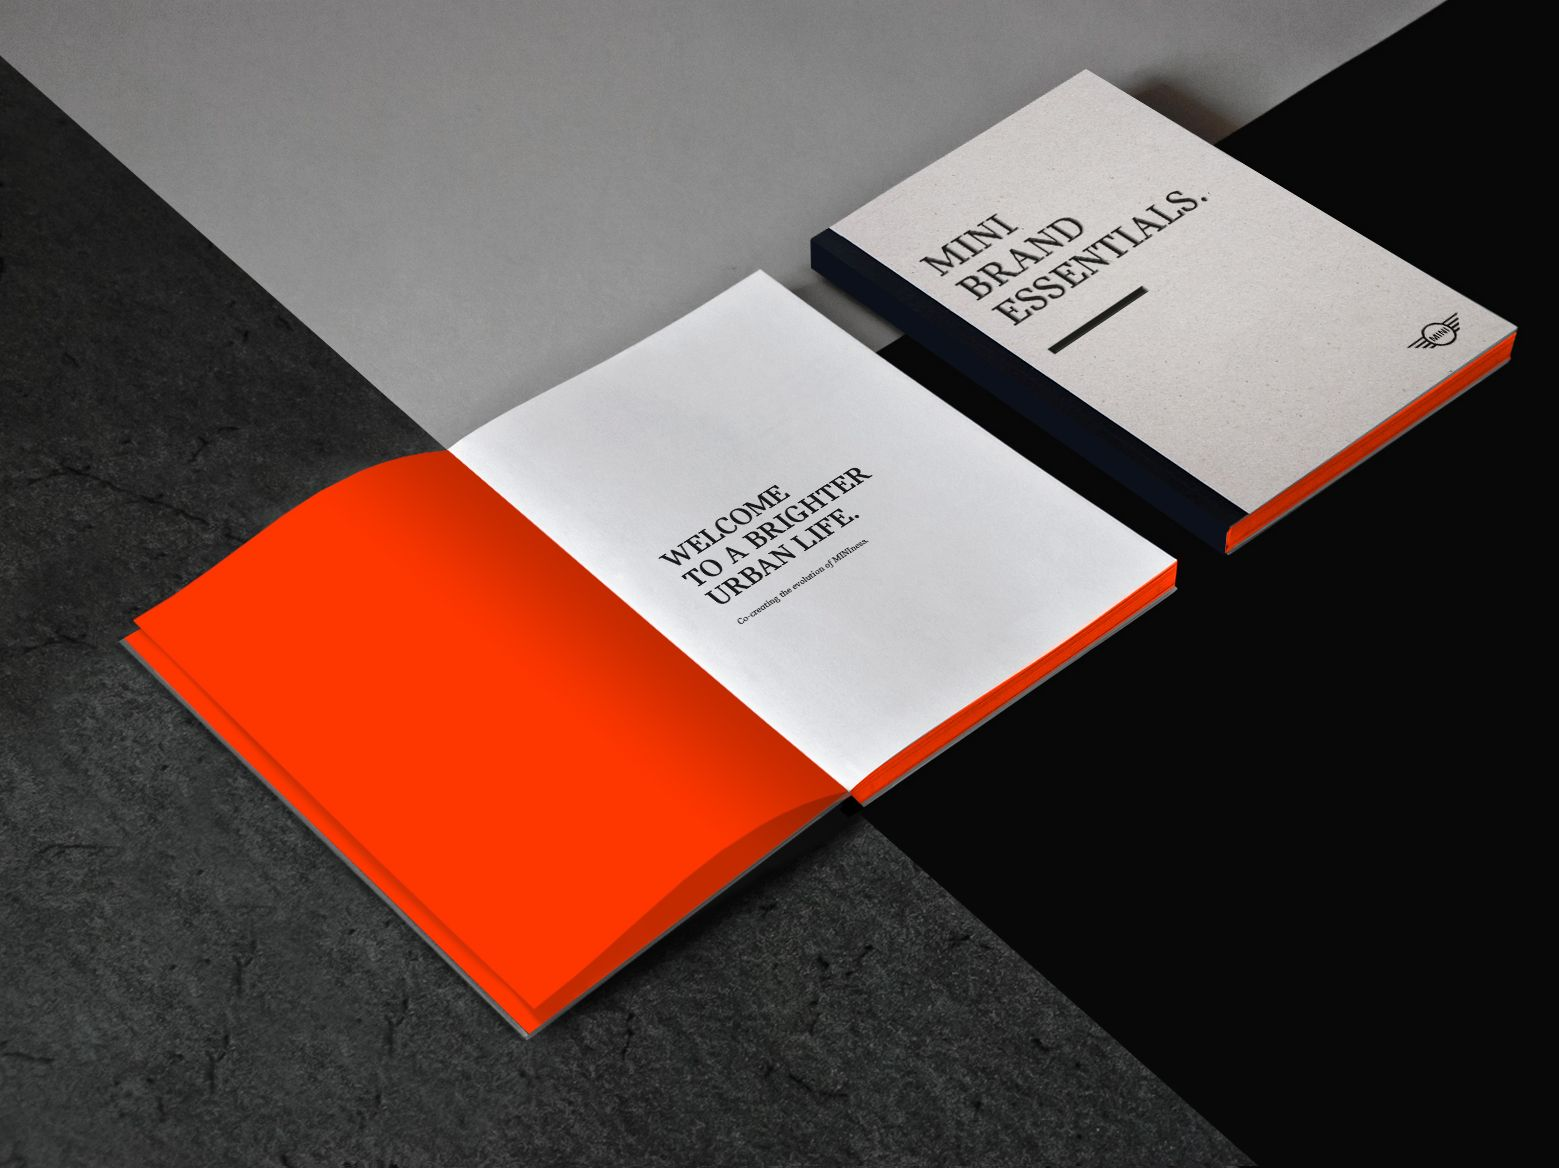 Marcela Grupp Art Design Direction Mini Brand Essentials Book Brand Design Cards Against Humanity